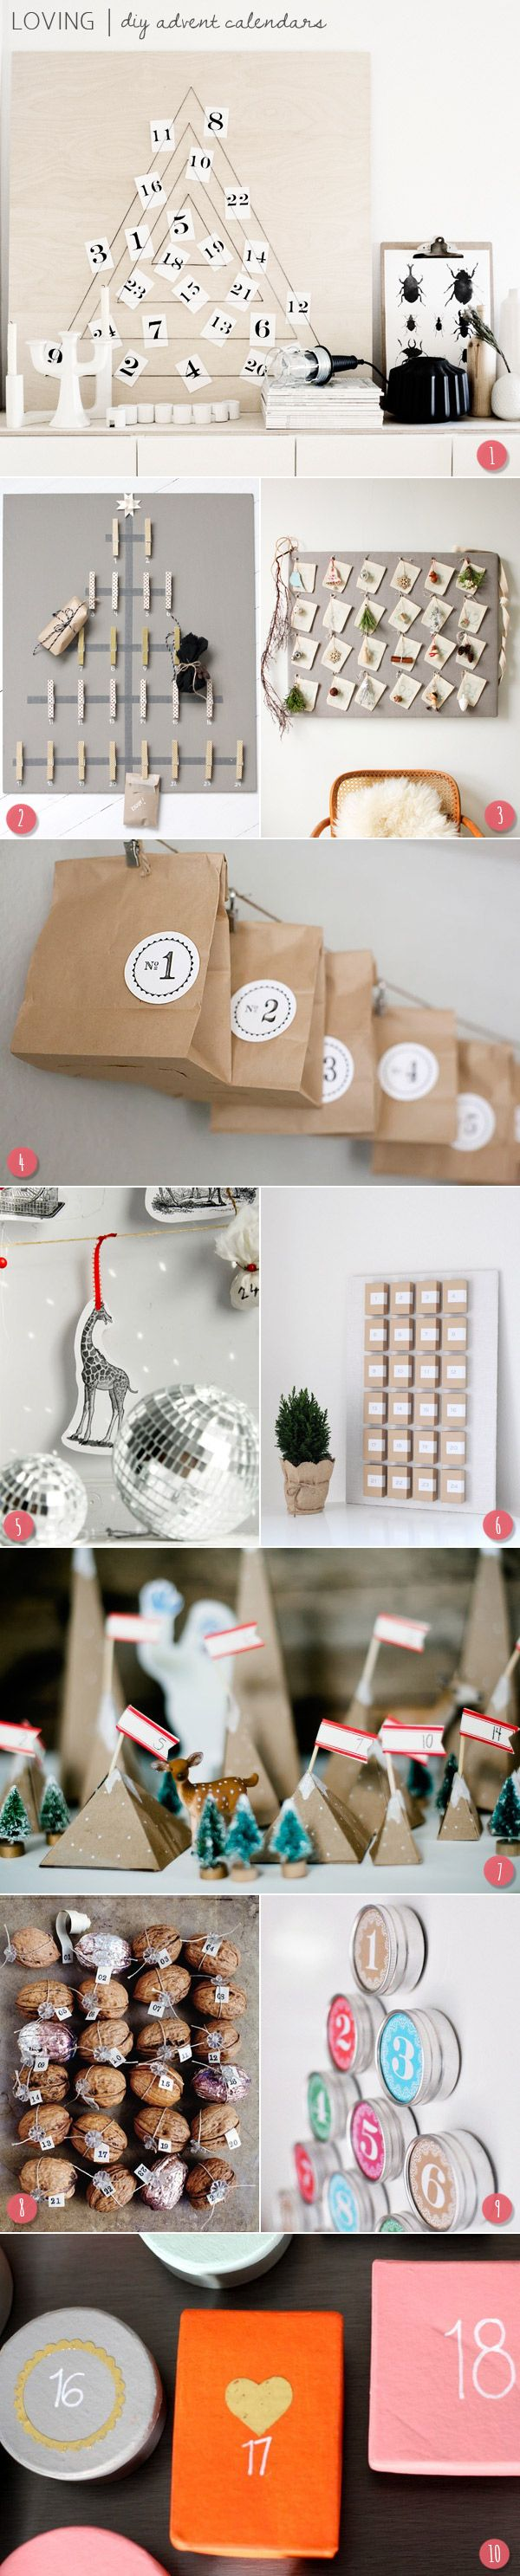 Loving Advent Calendars for #Christmas and the holiday season! super love the modern look to these